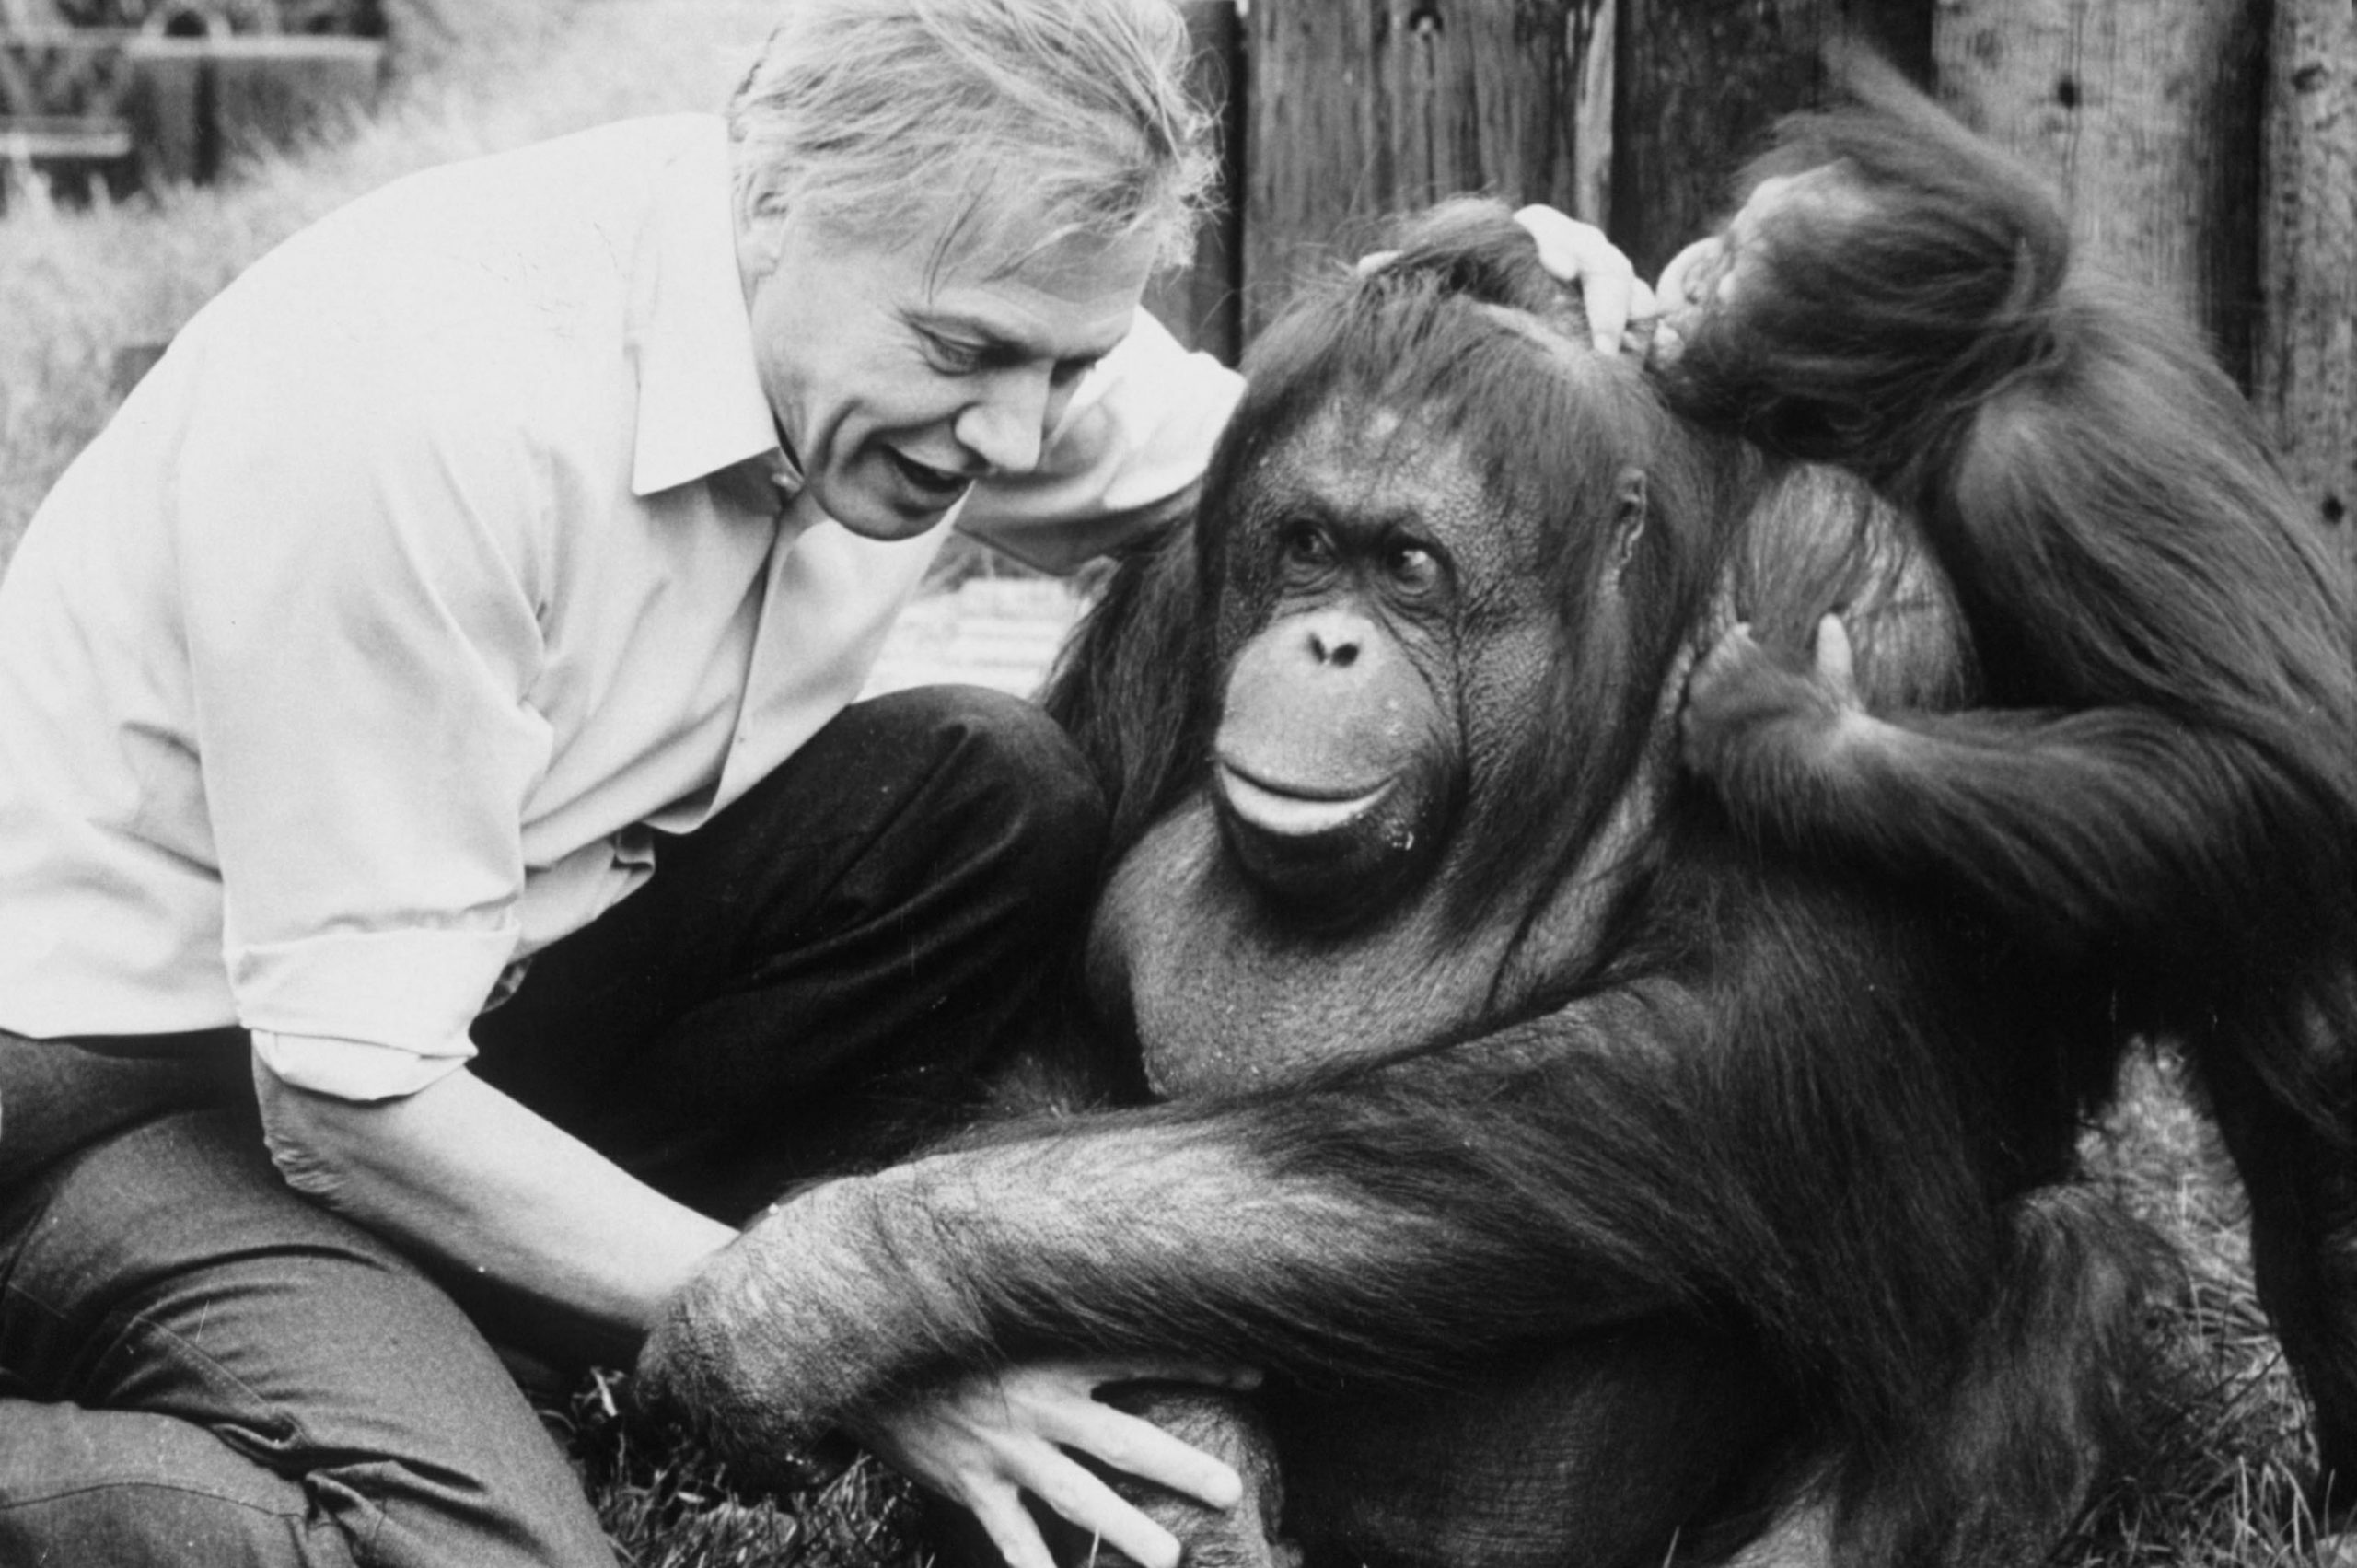 Despite cataclysmic predictions, Attenborough offers us a glimmer of hope